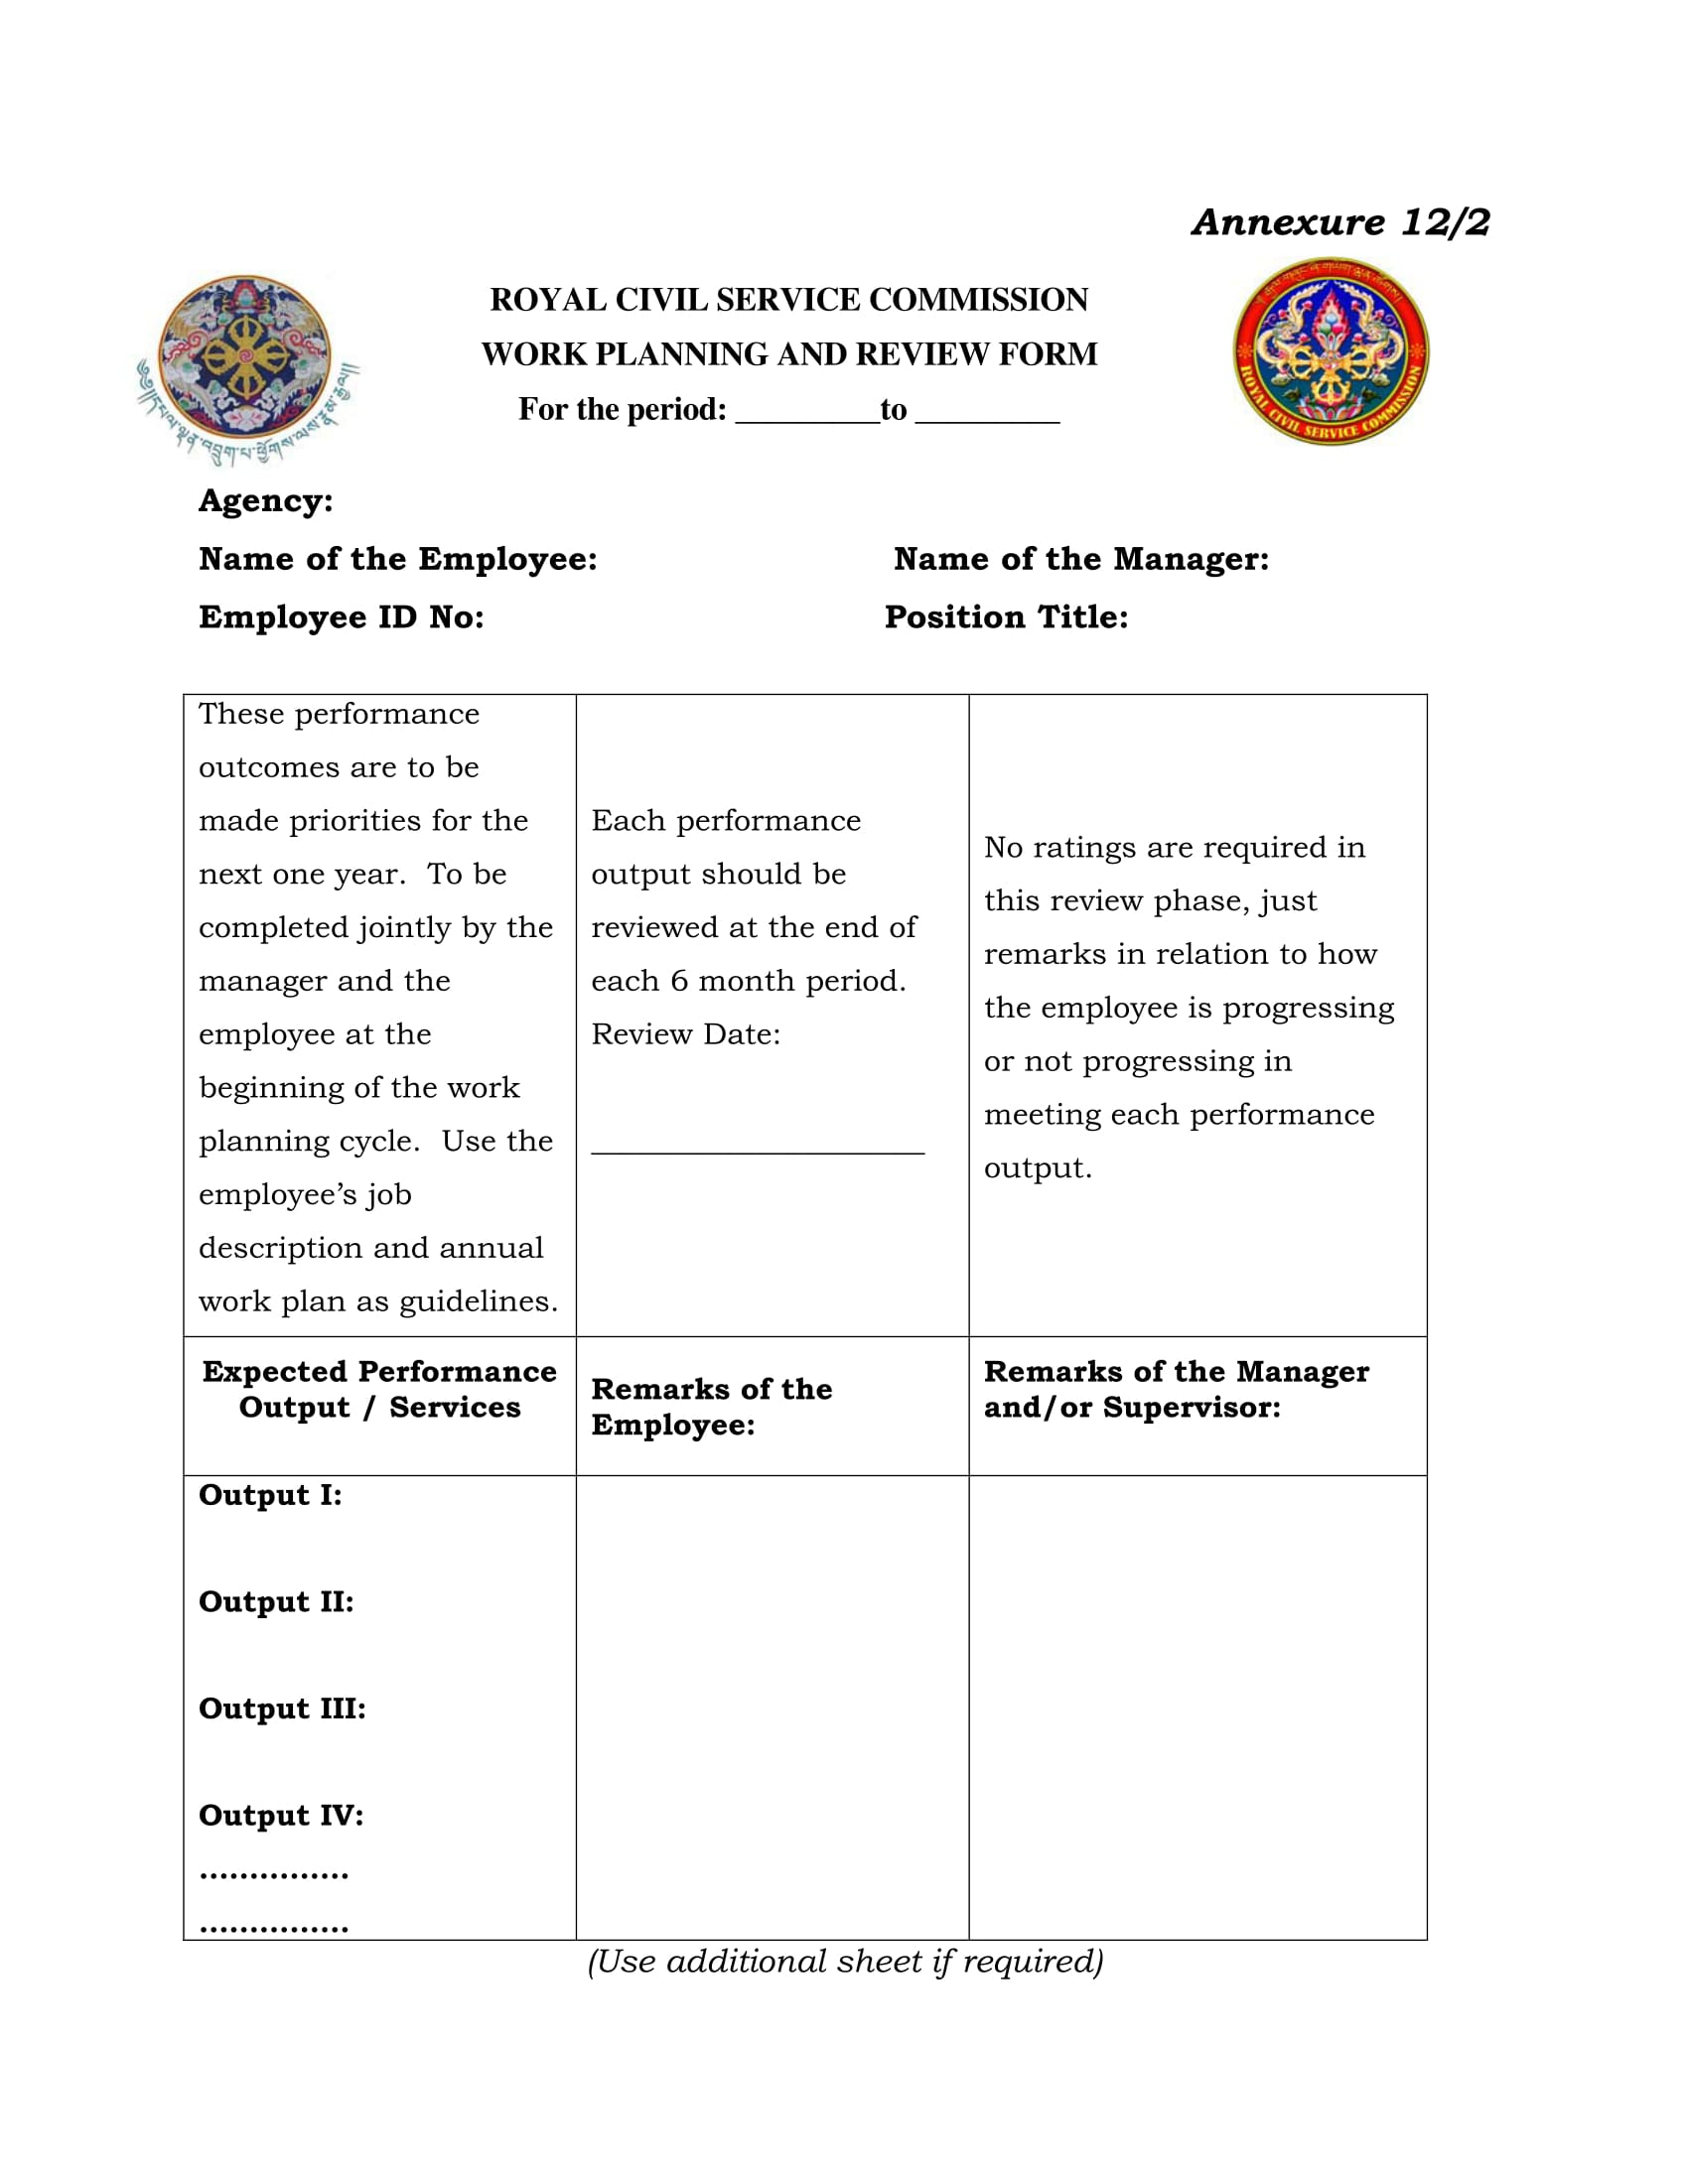 work planning and review form 1